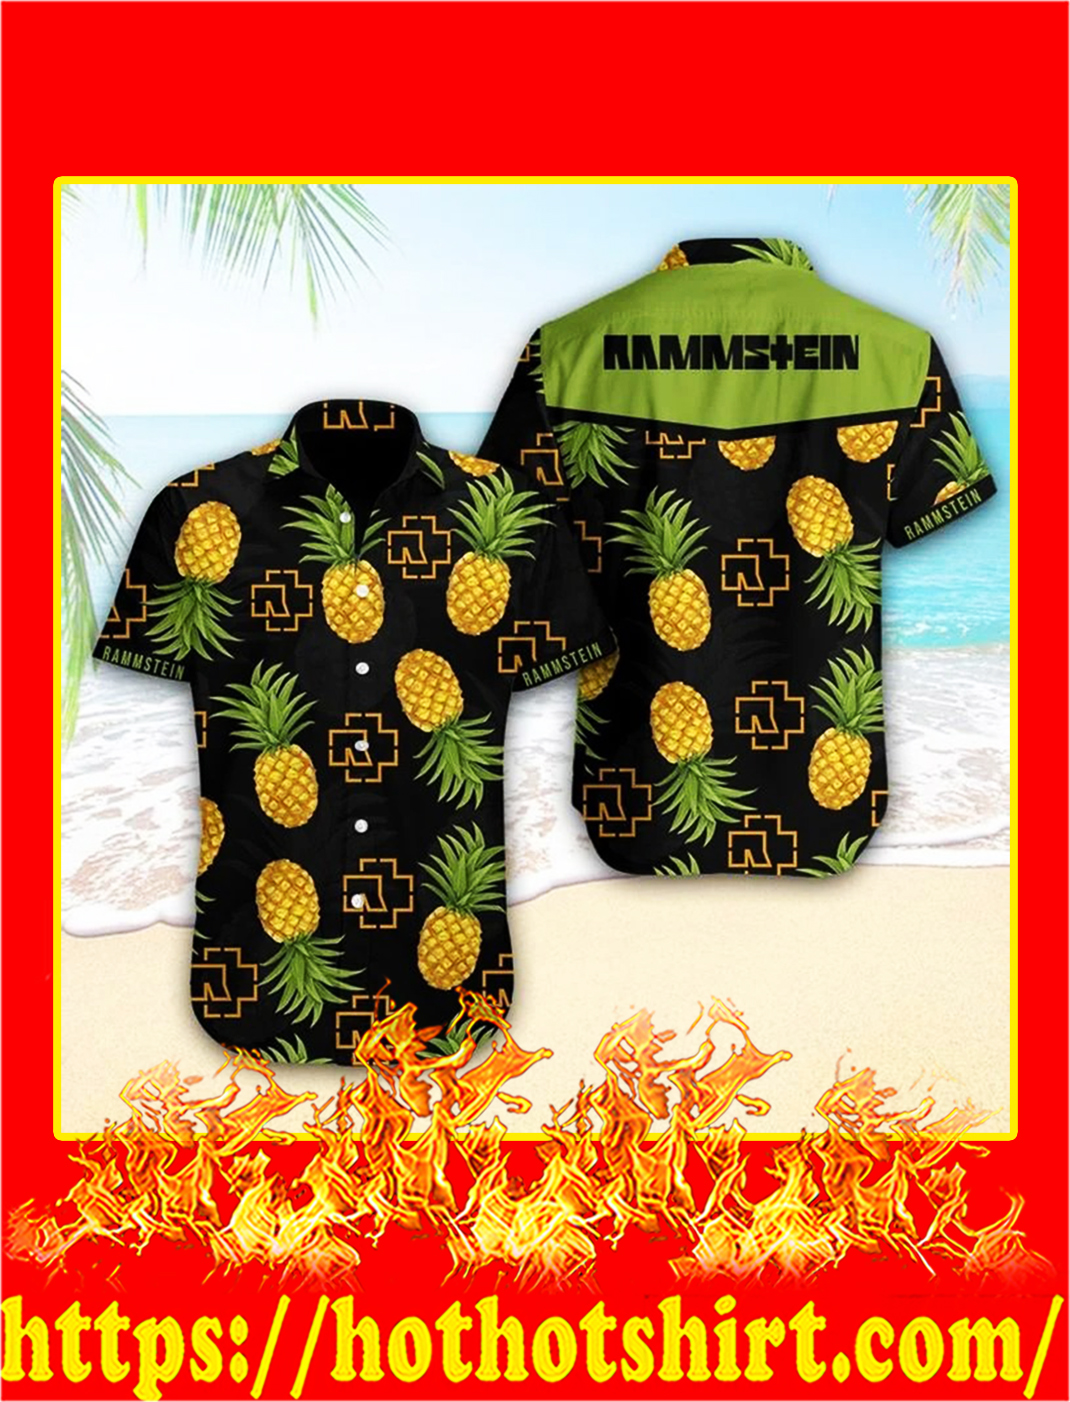 Rammstein pineapple hawaiian shirt - L